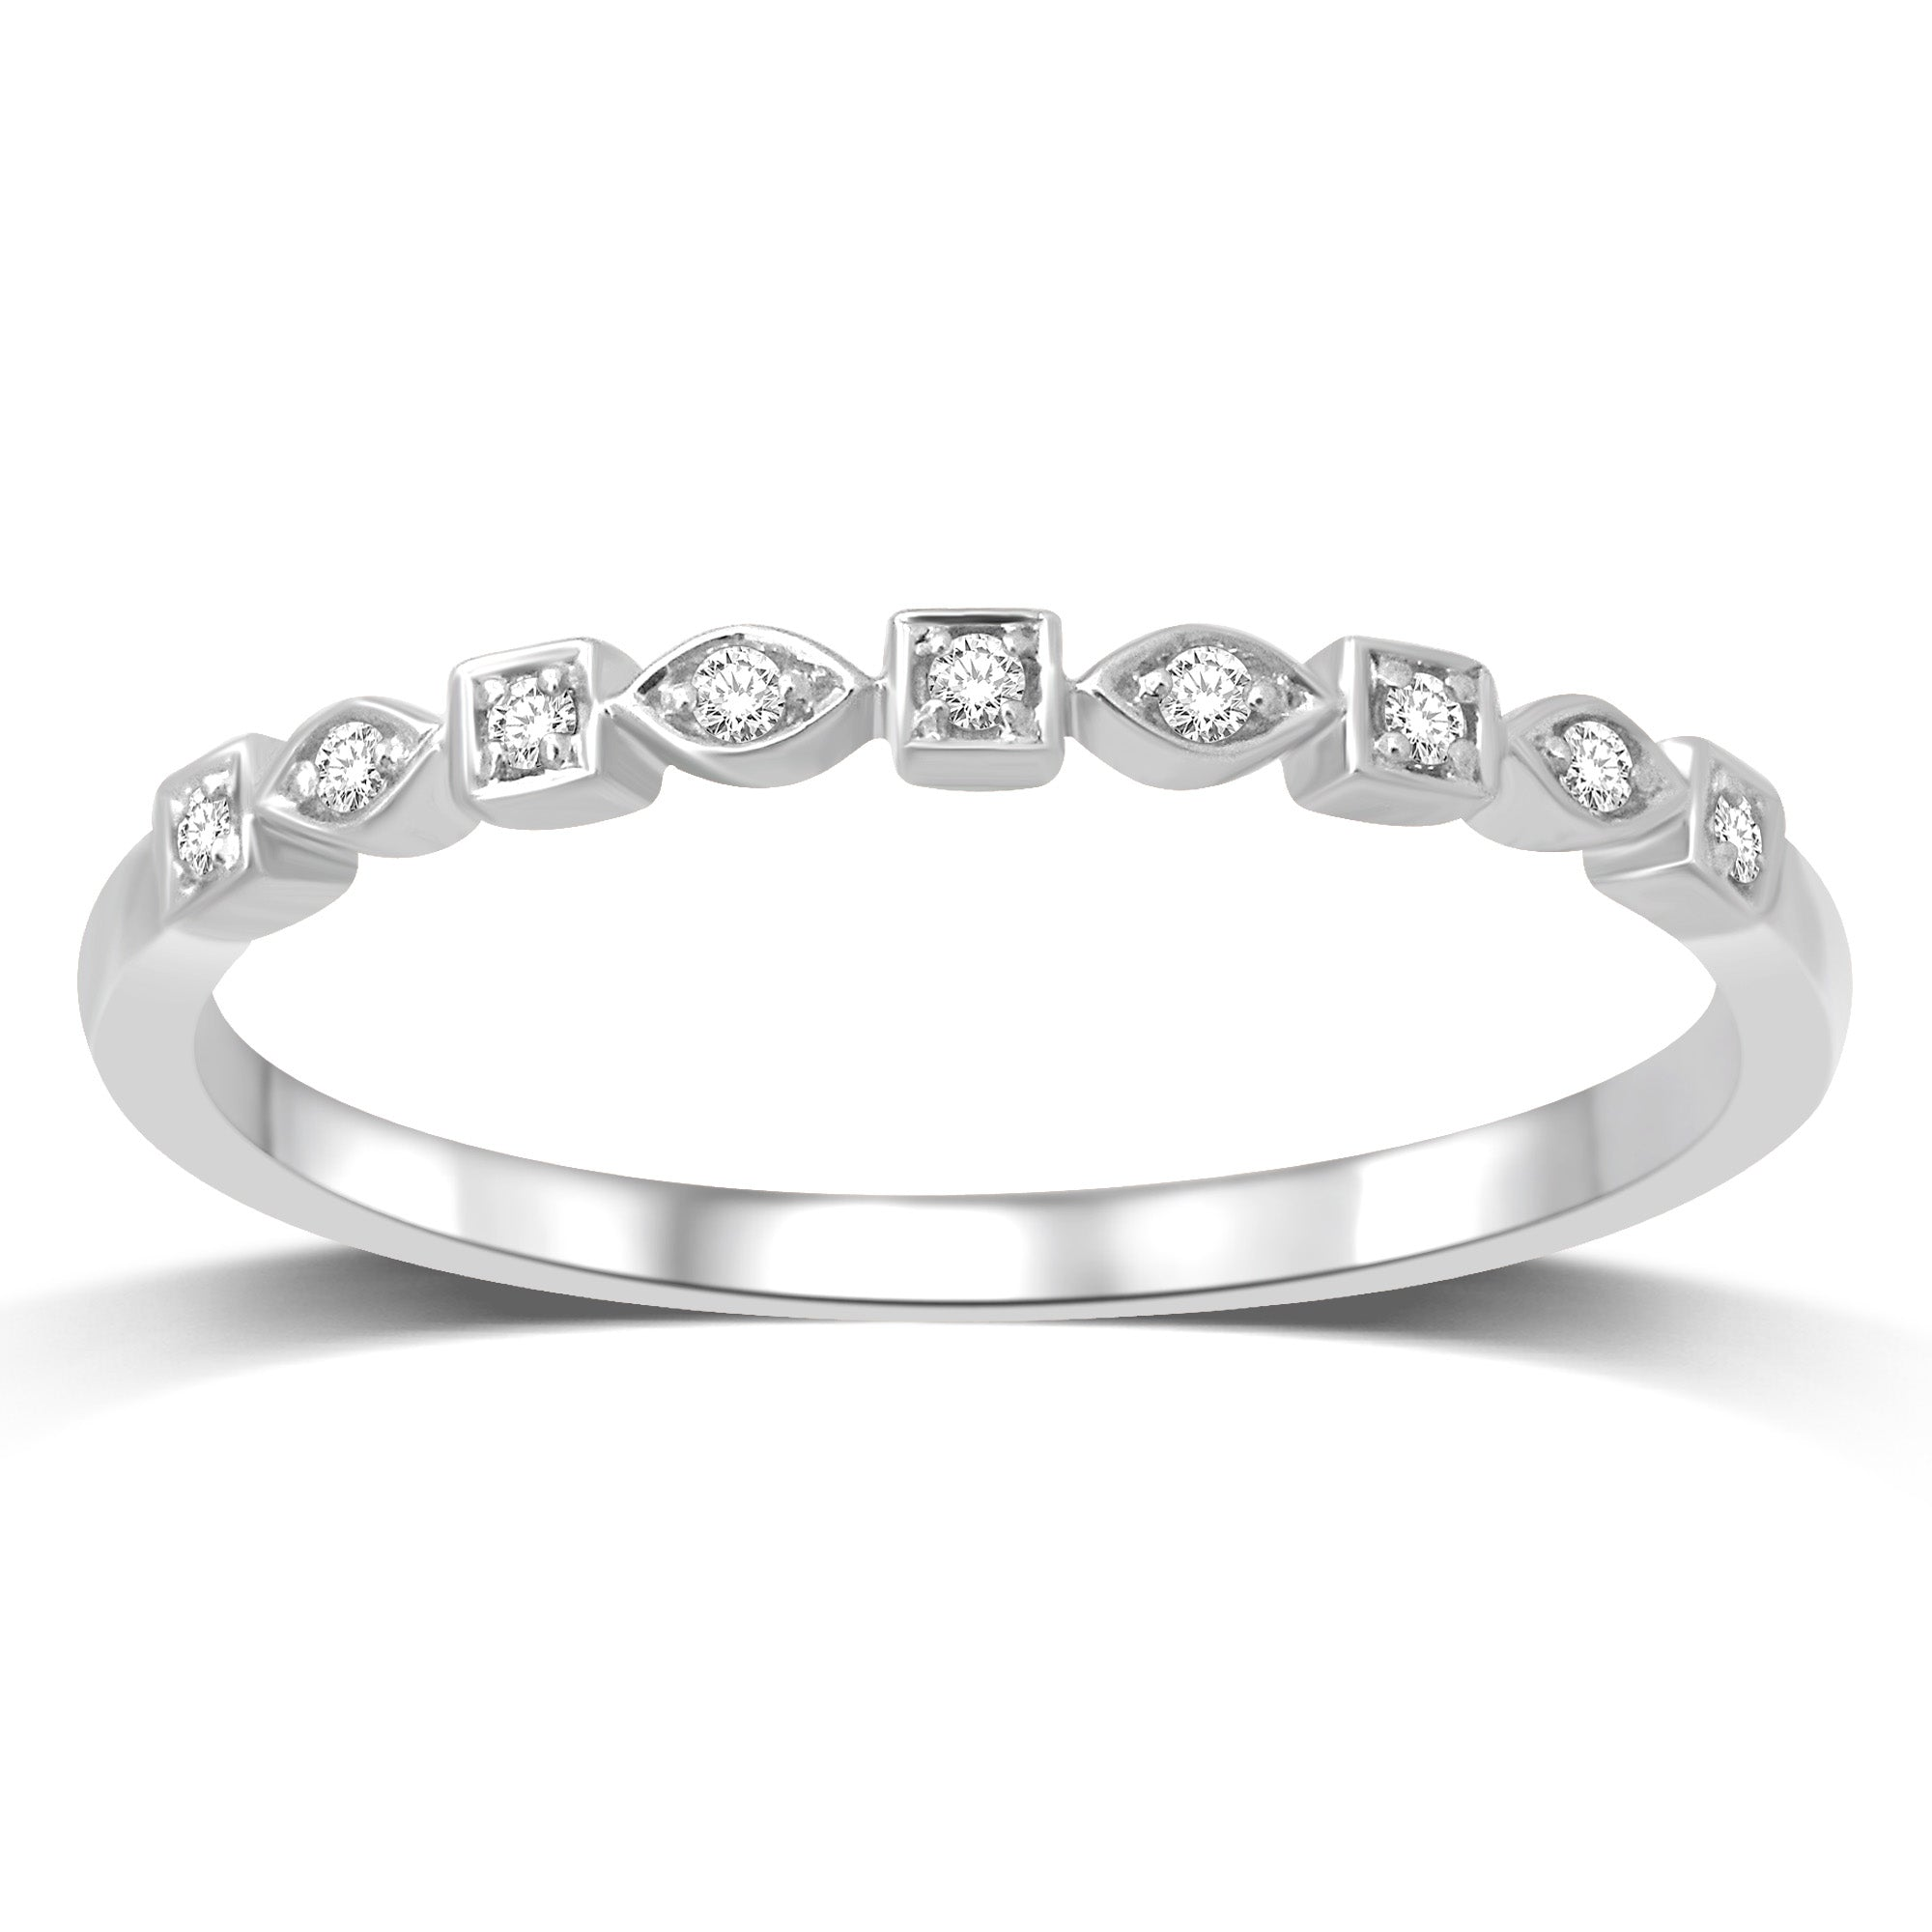 14K White Gold 1/20 Ctw Diamond Wedding Band